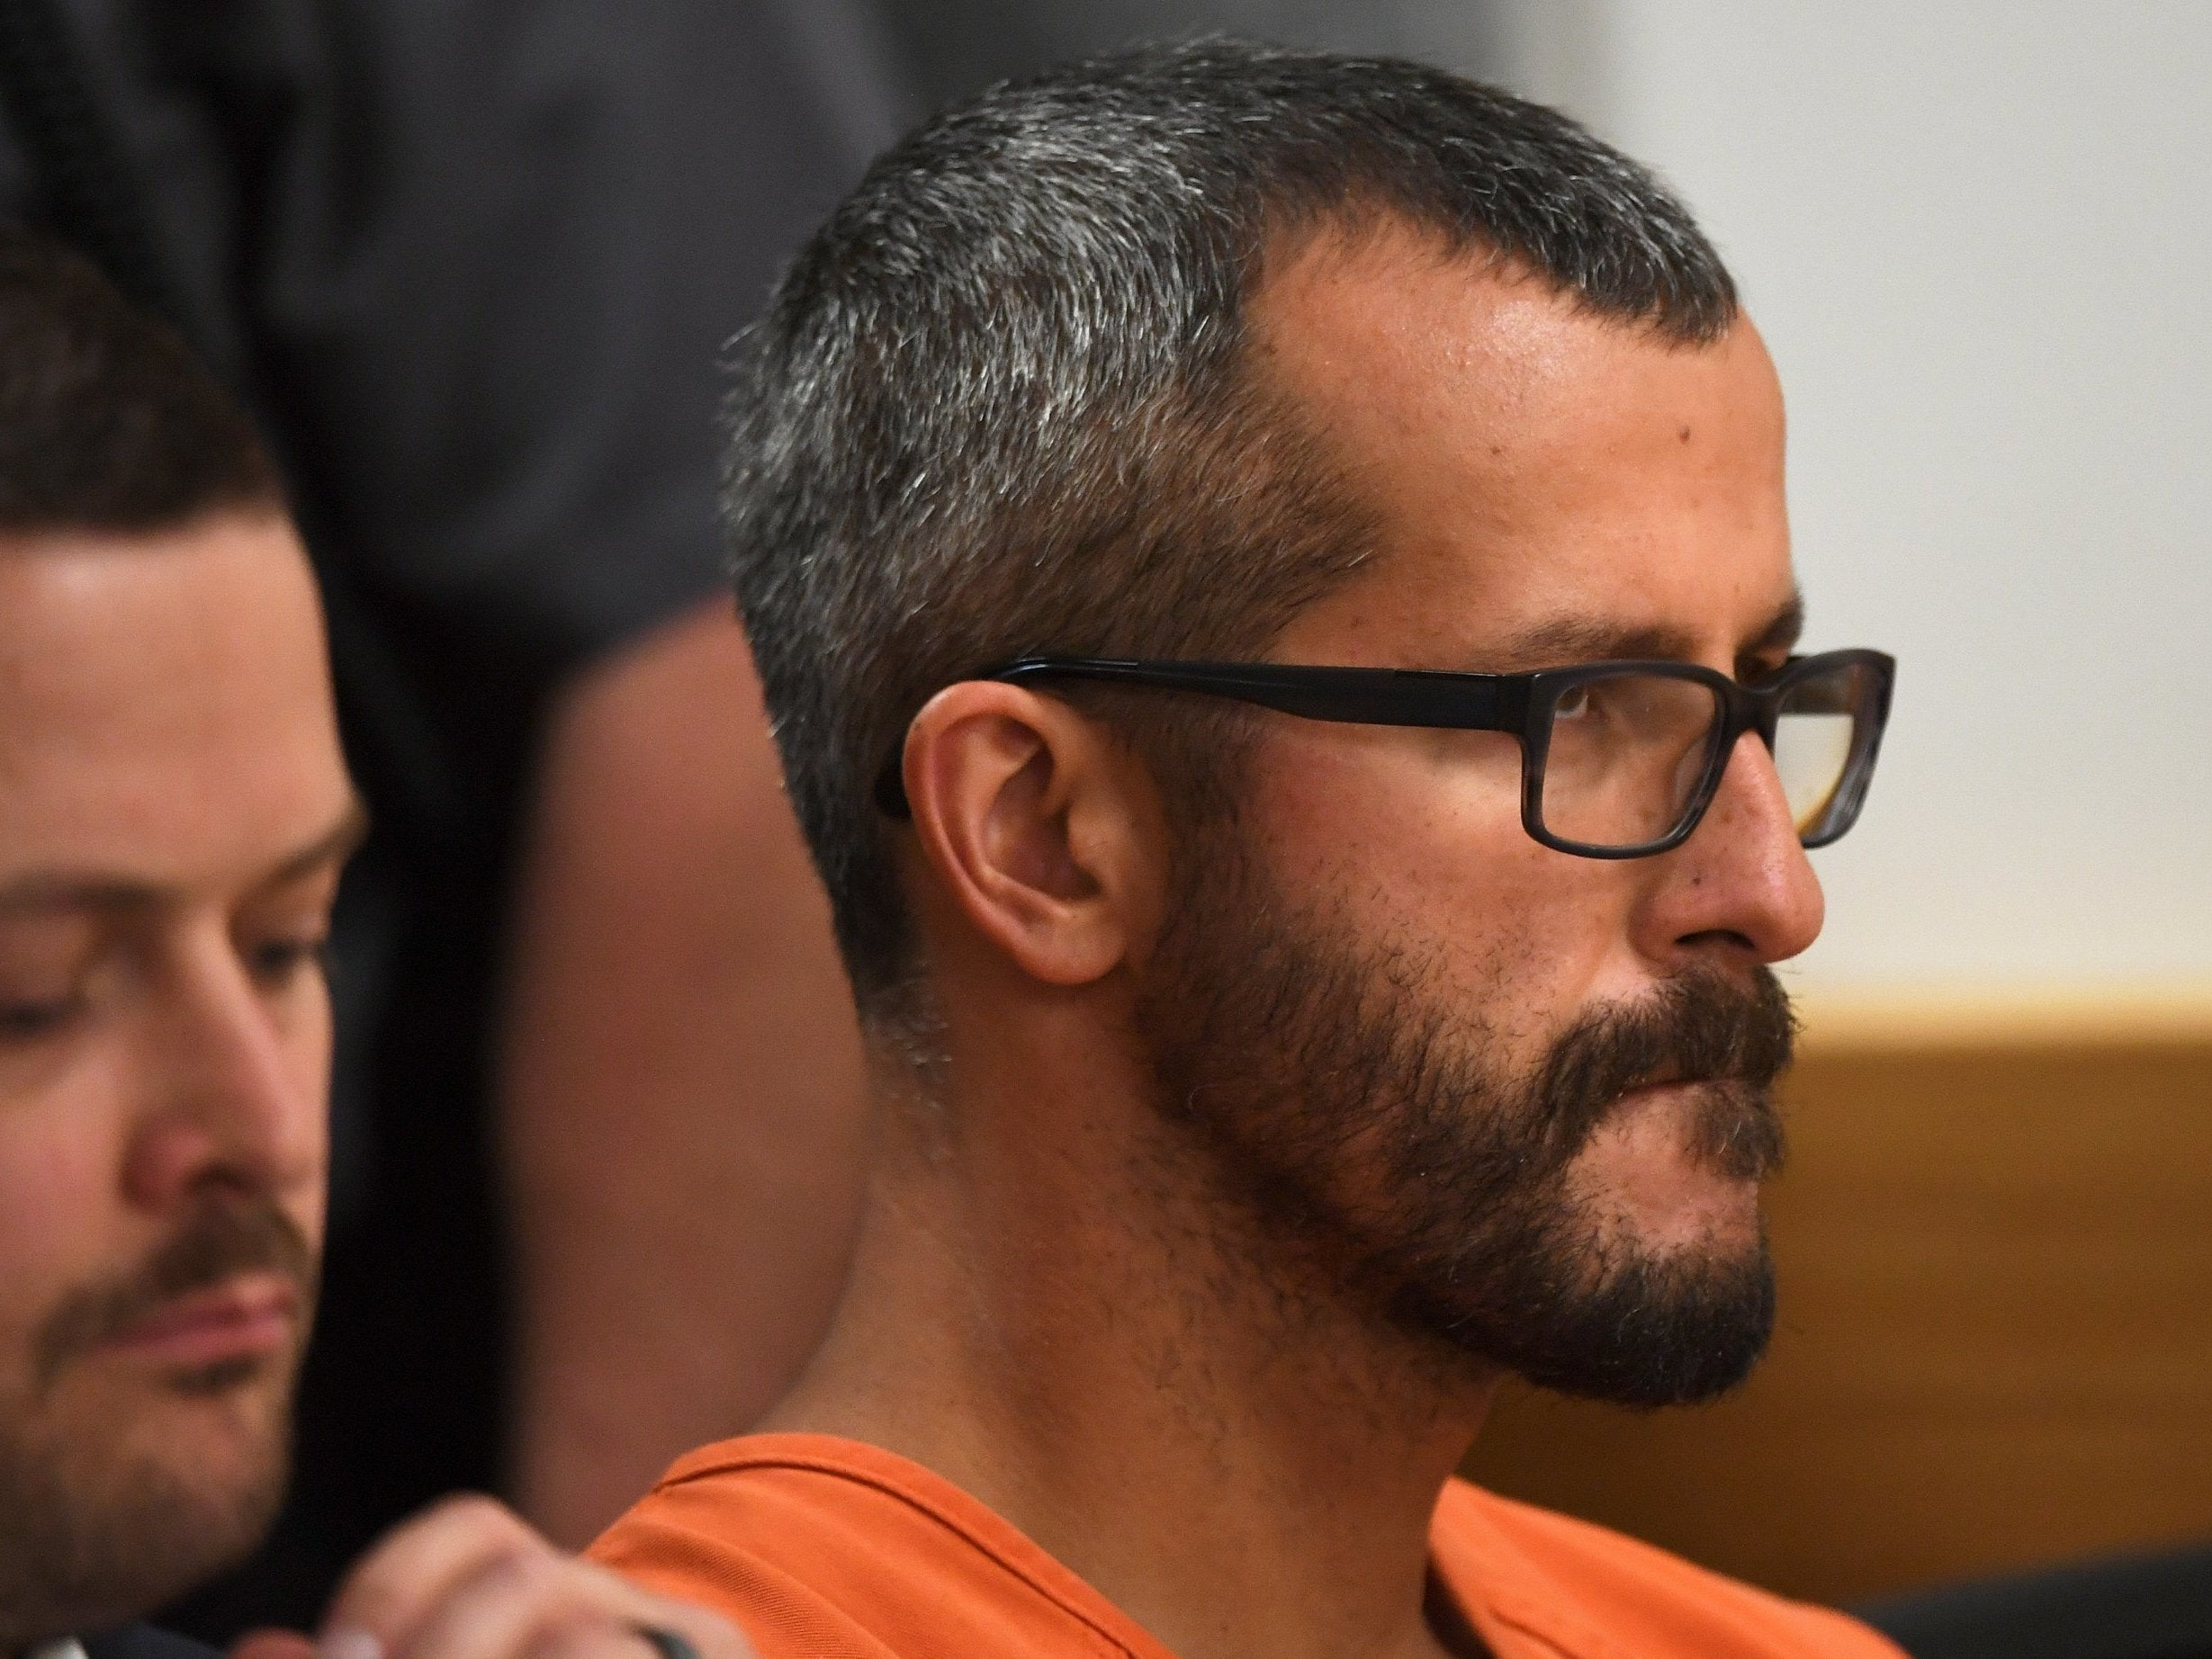 Christopher Watts: Man escapes death penalty as he admits murder of pregnant wife and daughters